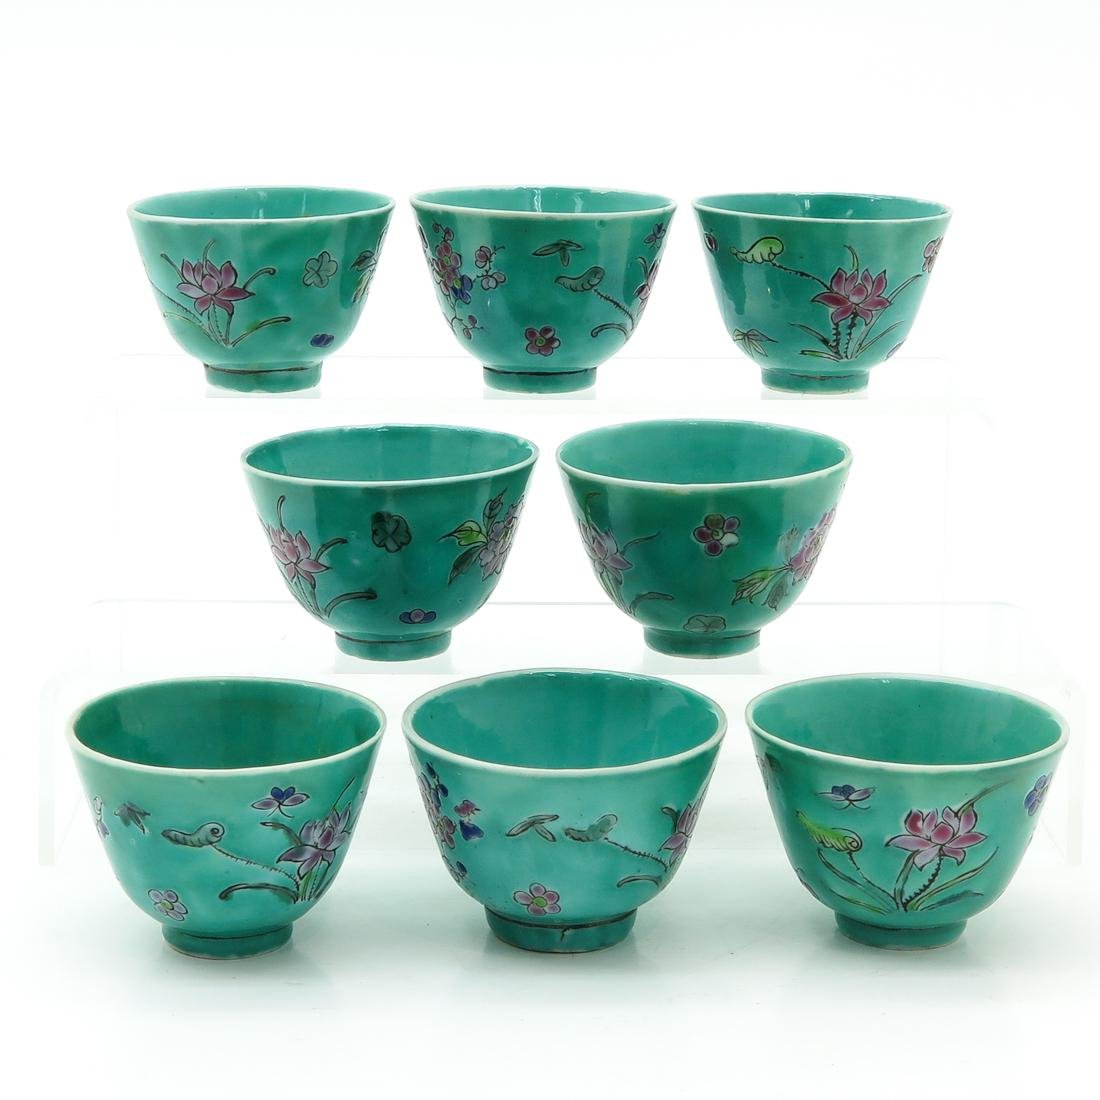 Lot of 8 Cups - 4